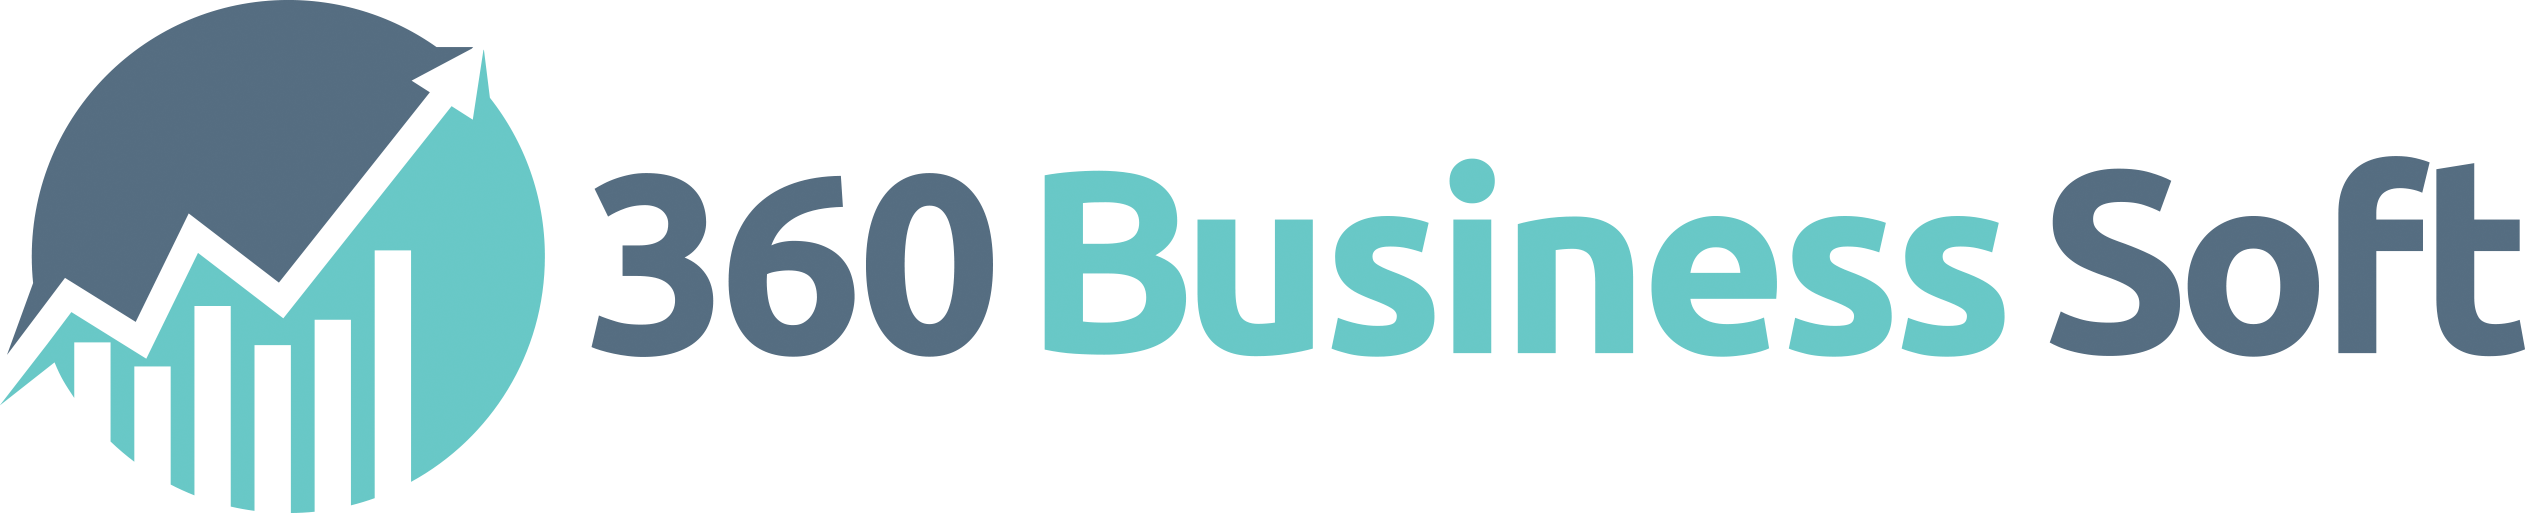 logo 360 businesssoft